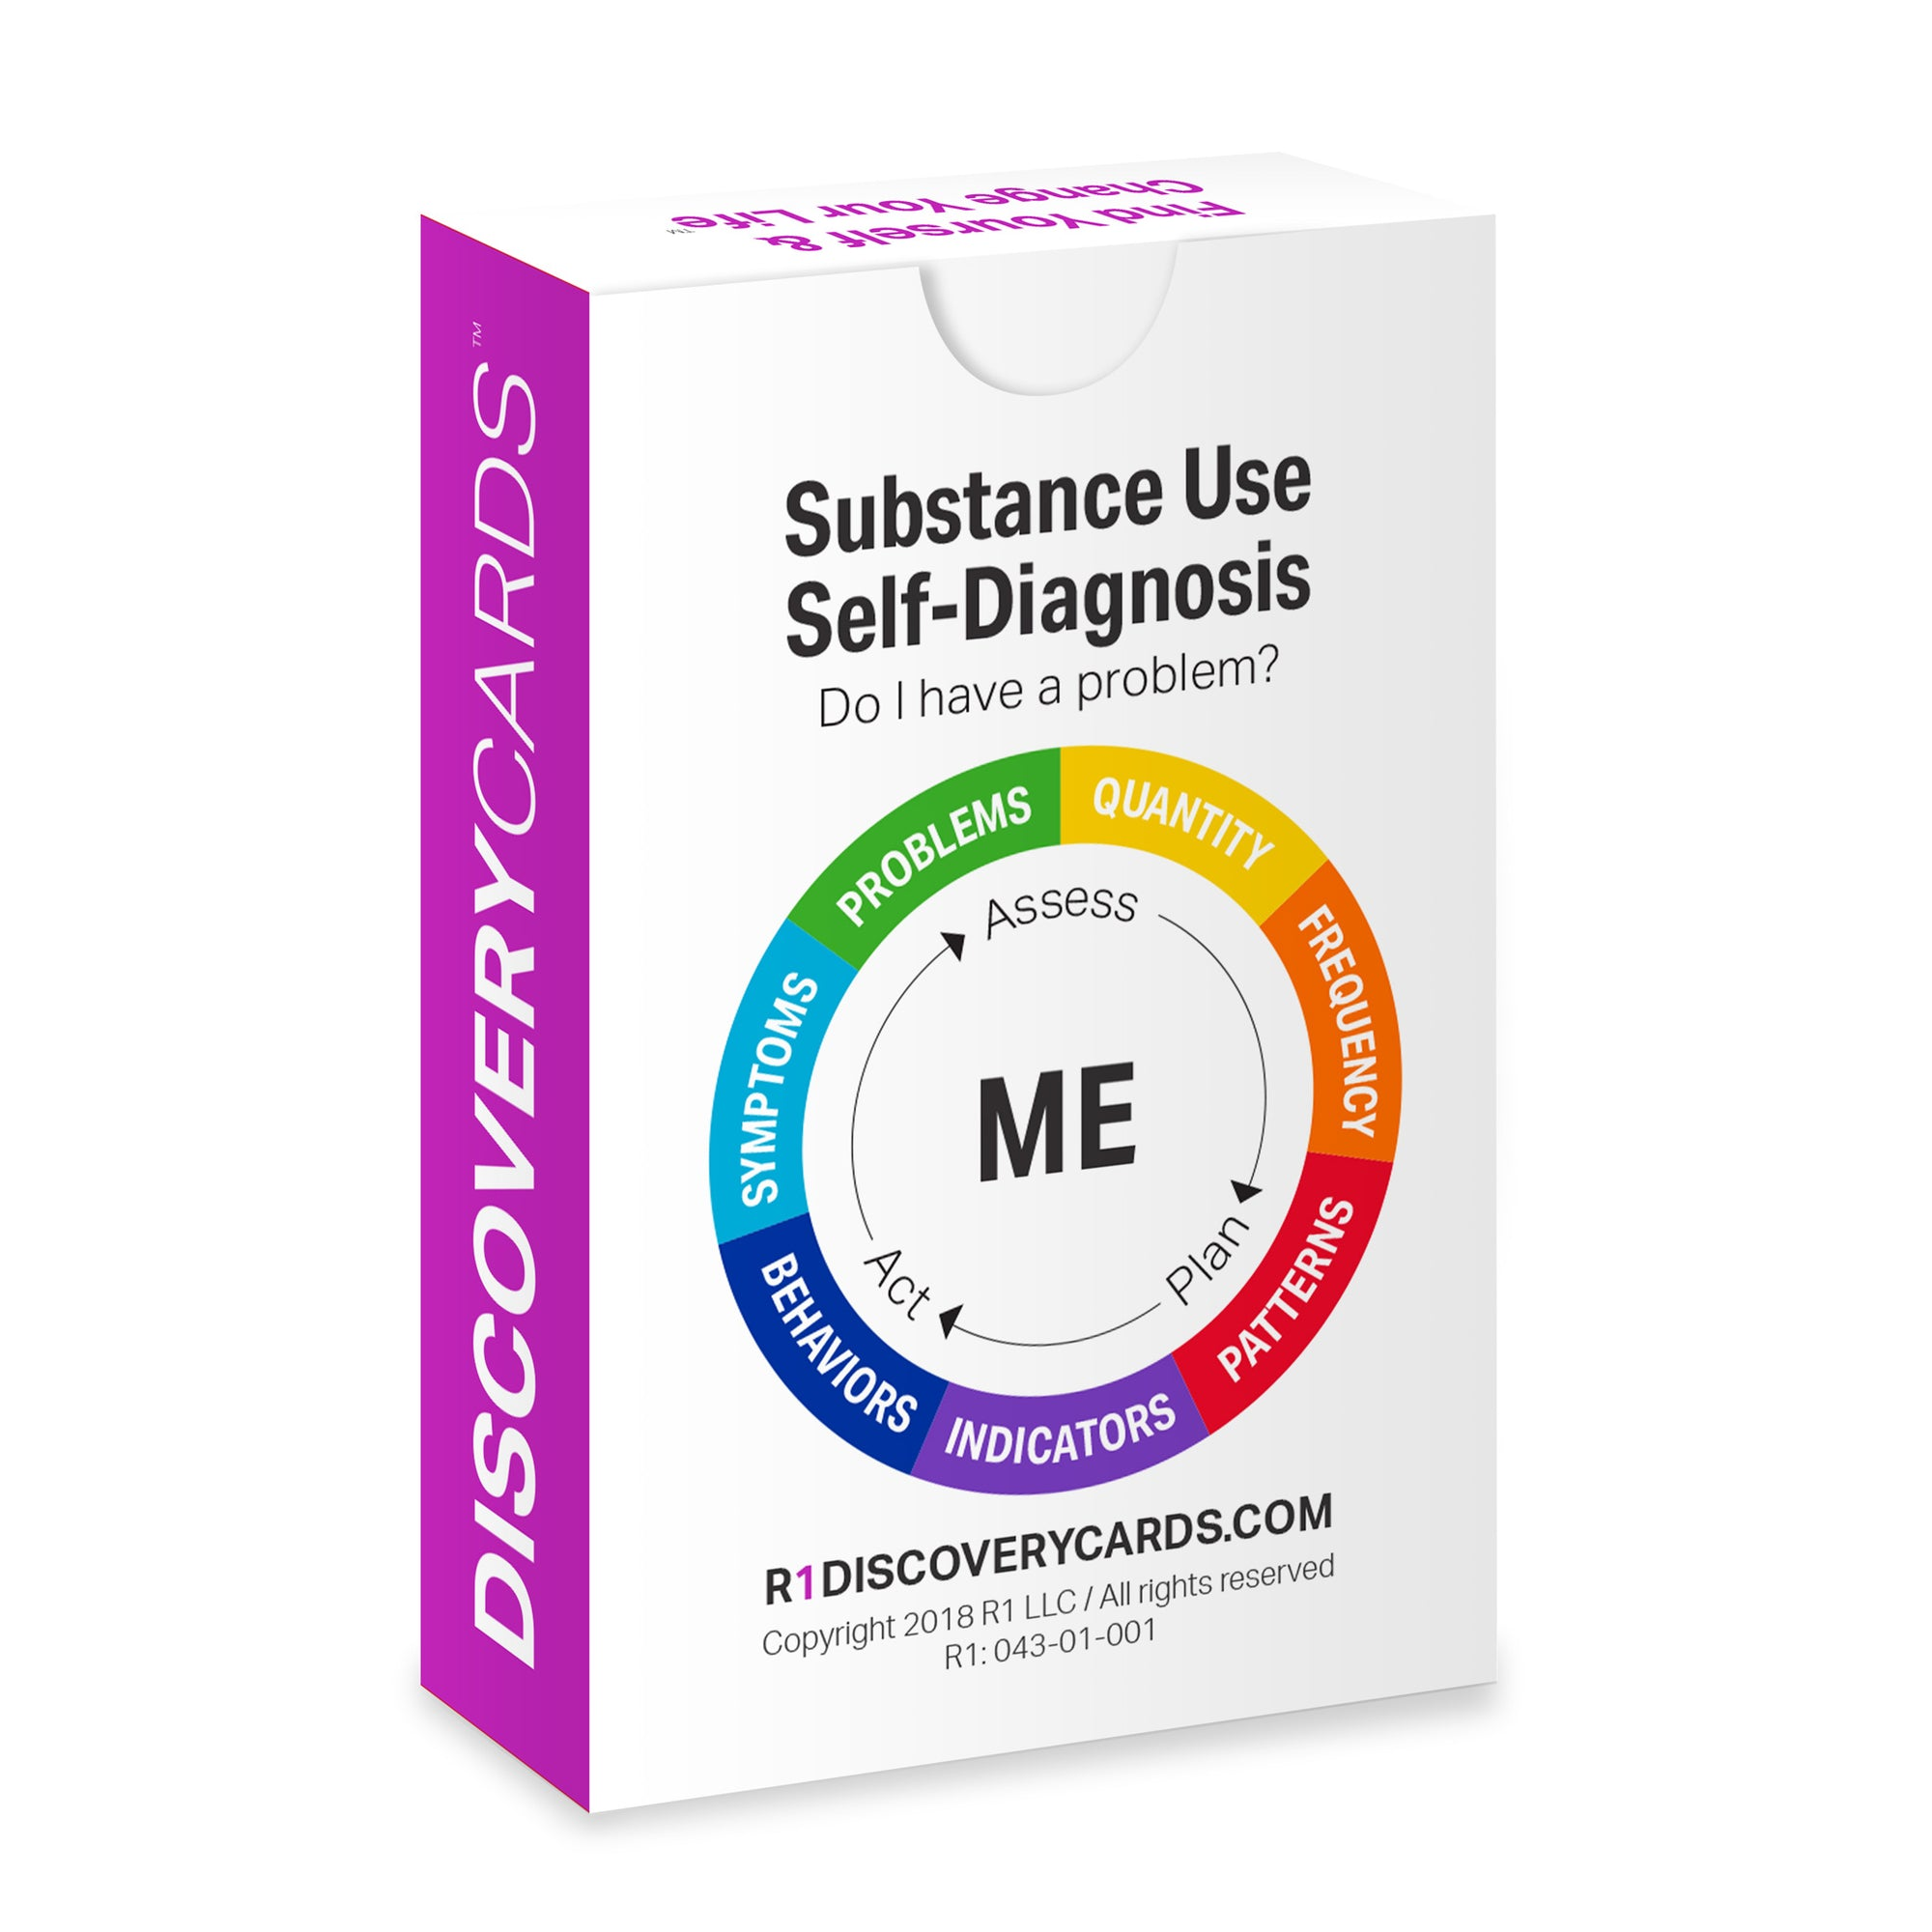 Substance Use Self-Assessment Group Kit